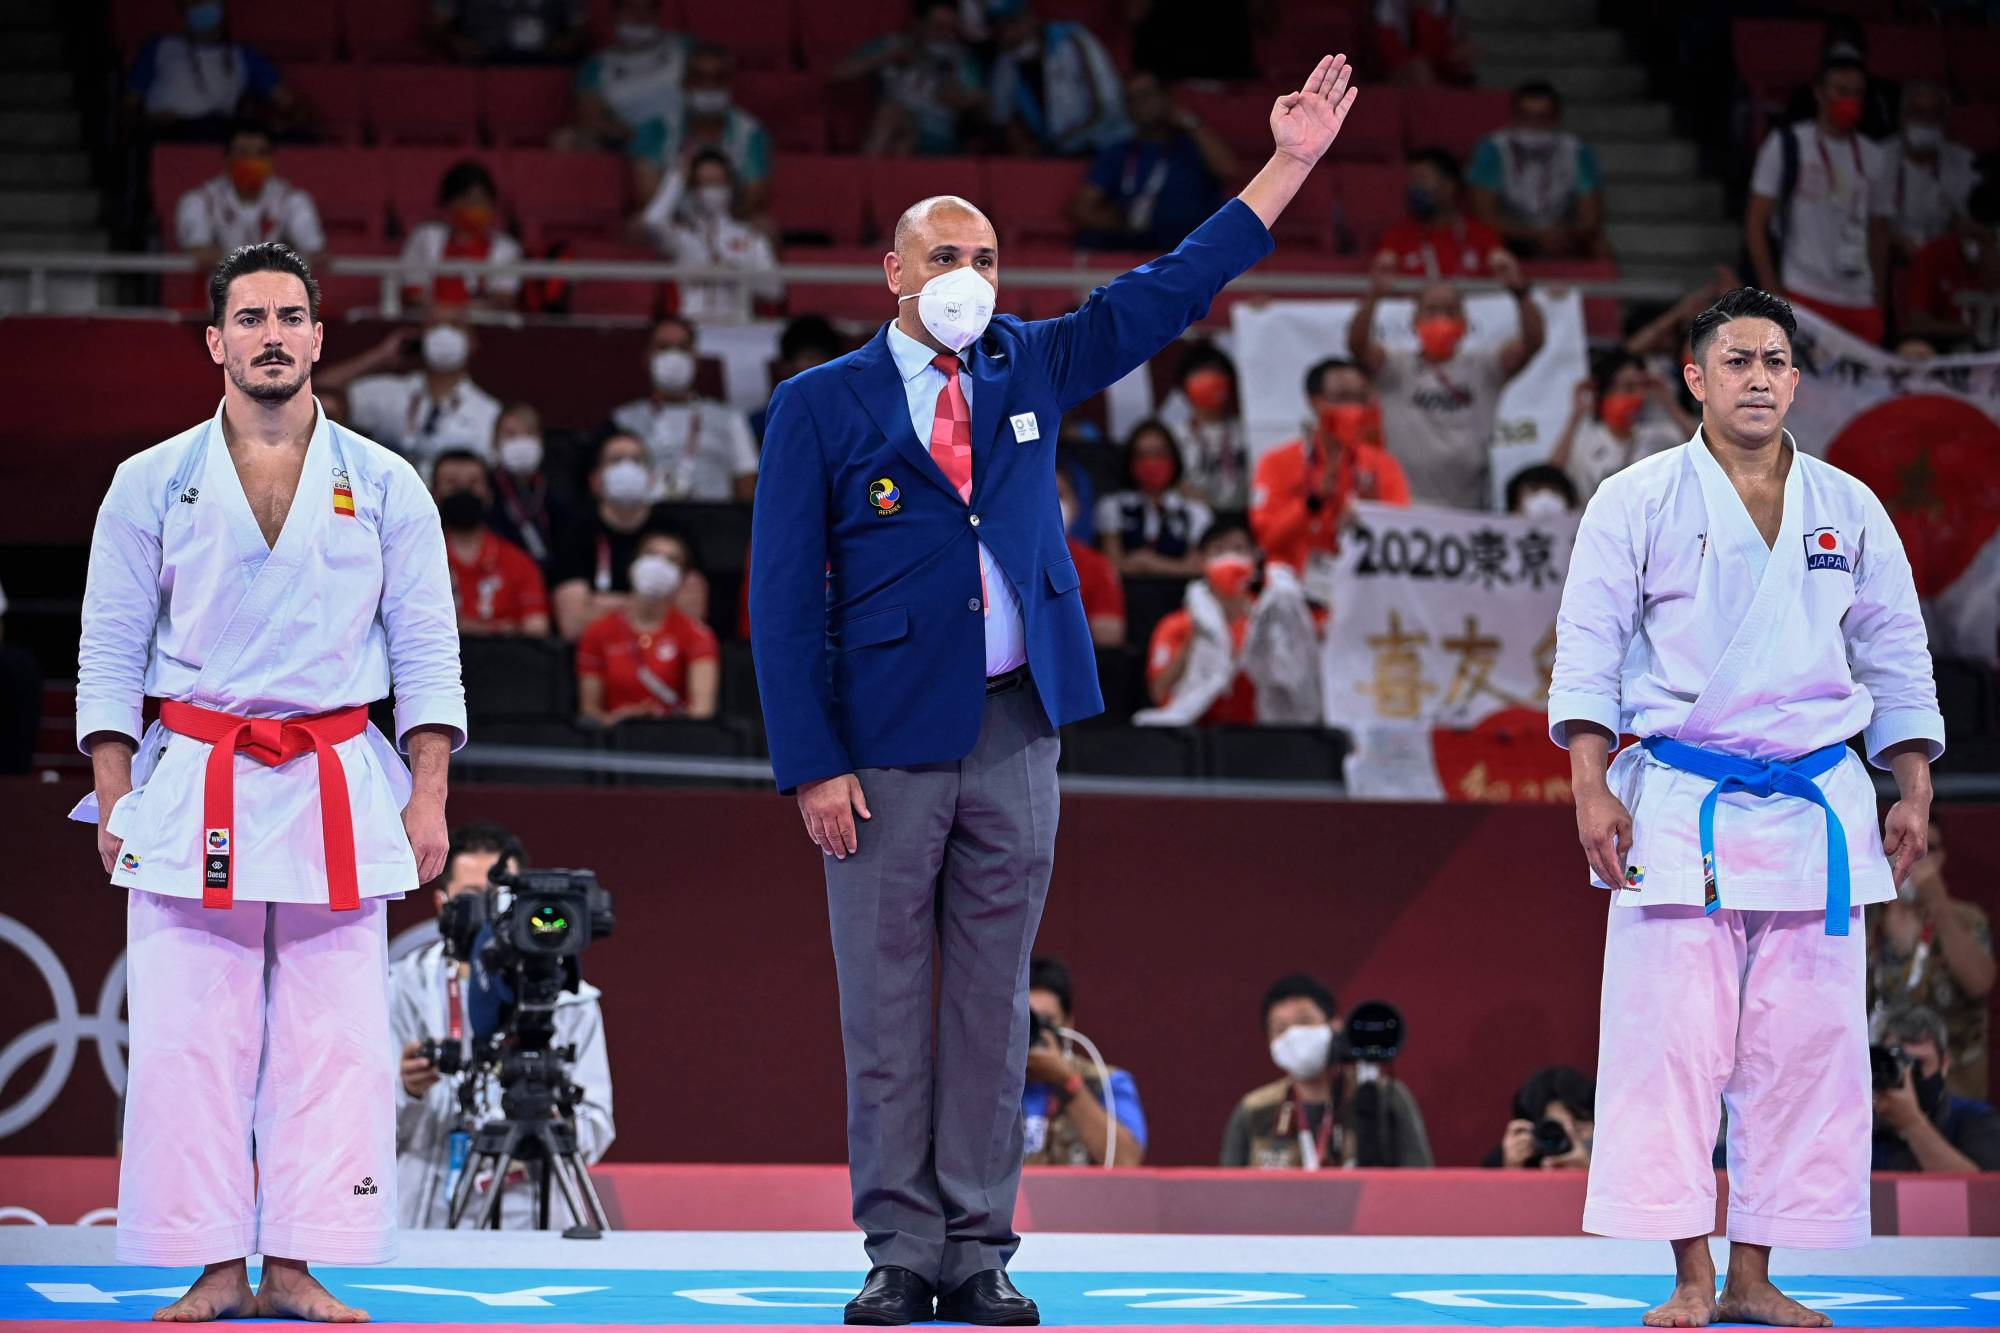 Japan's Ryo Kiyuna is awarded the gold medal over Spain's Damian Quintero after the final bout of the men's kata competition on Friday. | AFP-JIJI